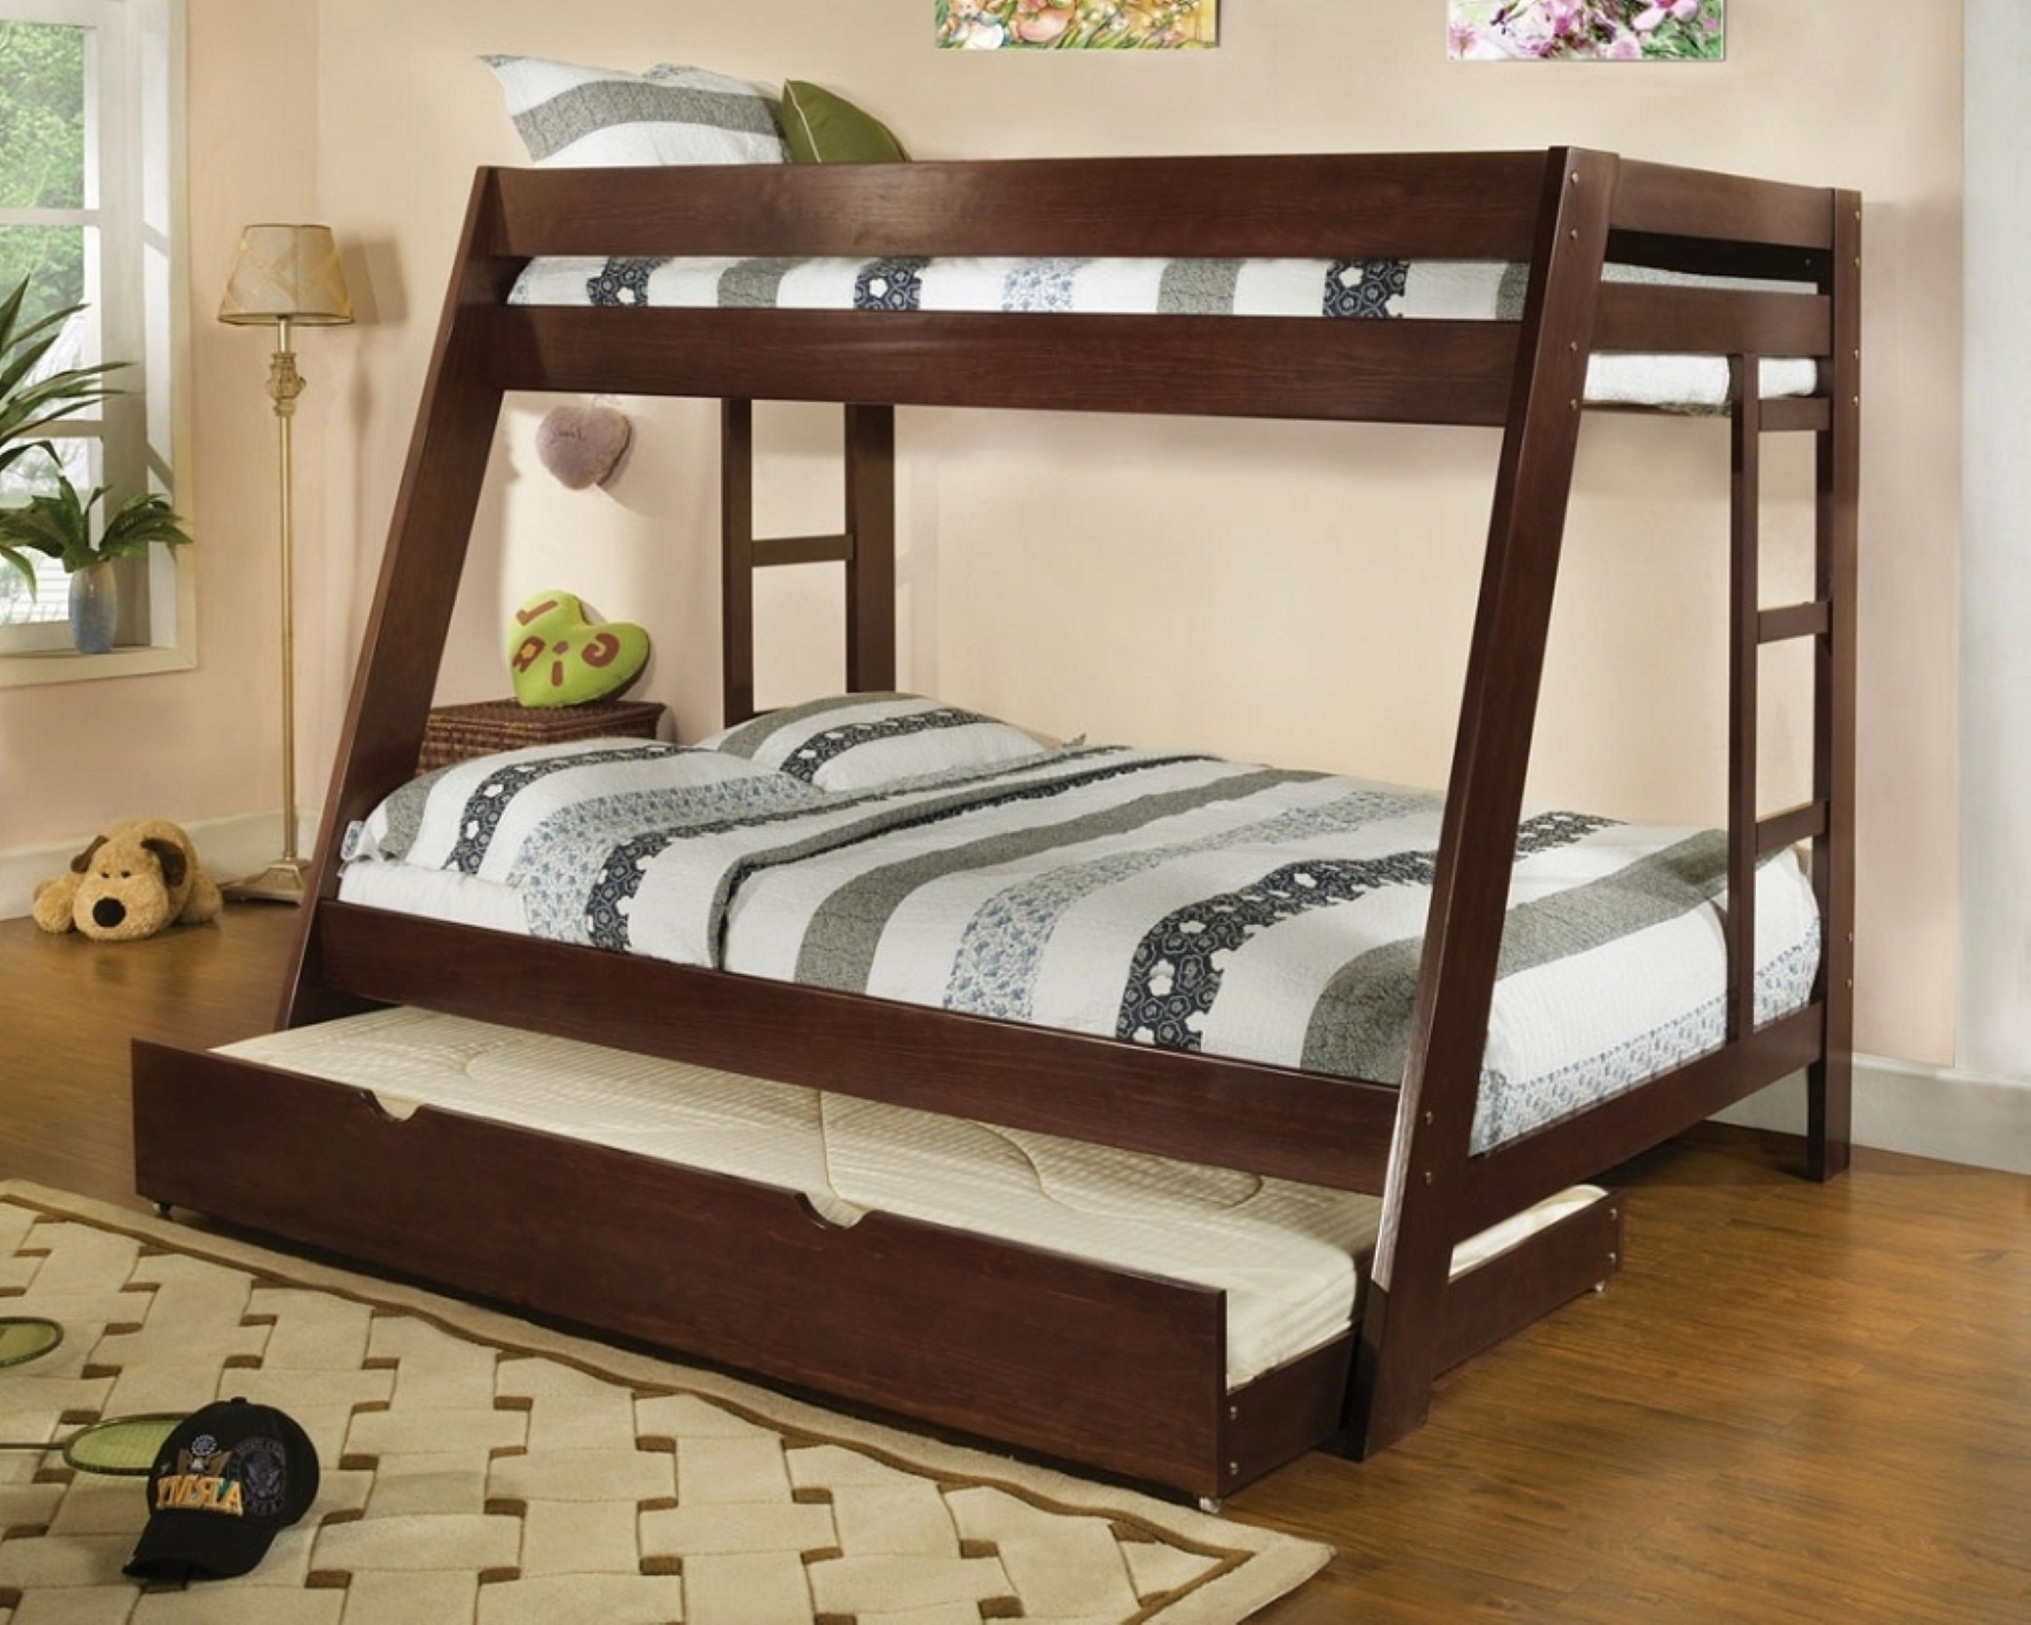 Luxury Interior Kids Bedroom Filled Cool Dark Wood Bunk Bed With Trundle And Double Ladders Feat Contemporary Corner Floor Lamp (Image 79 of 123)